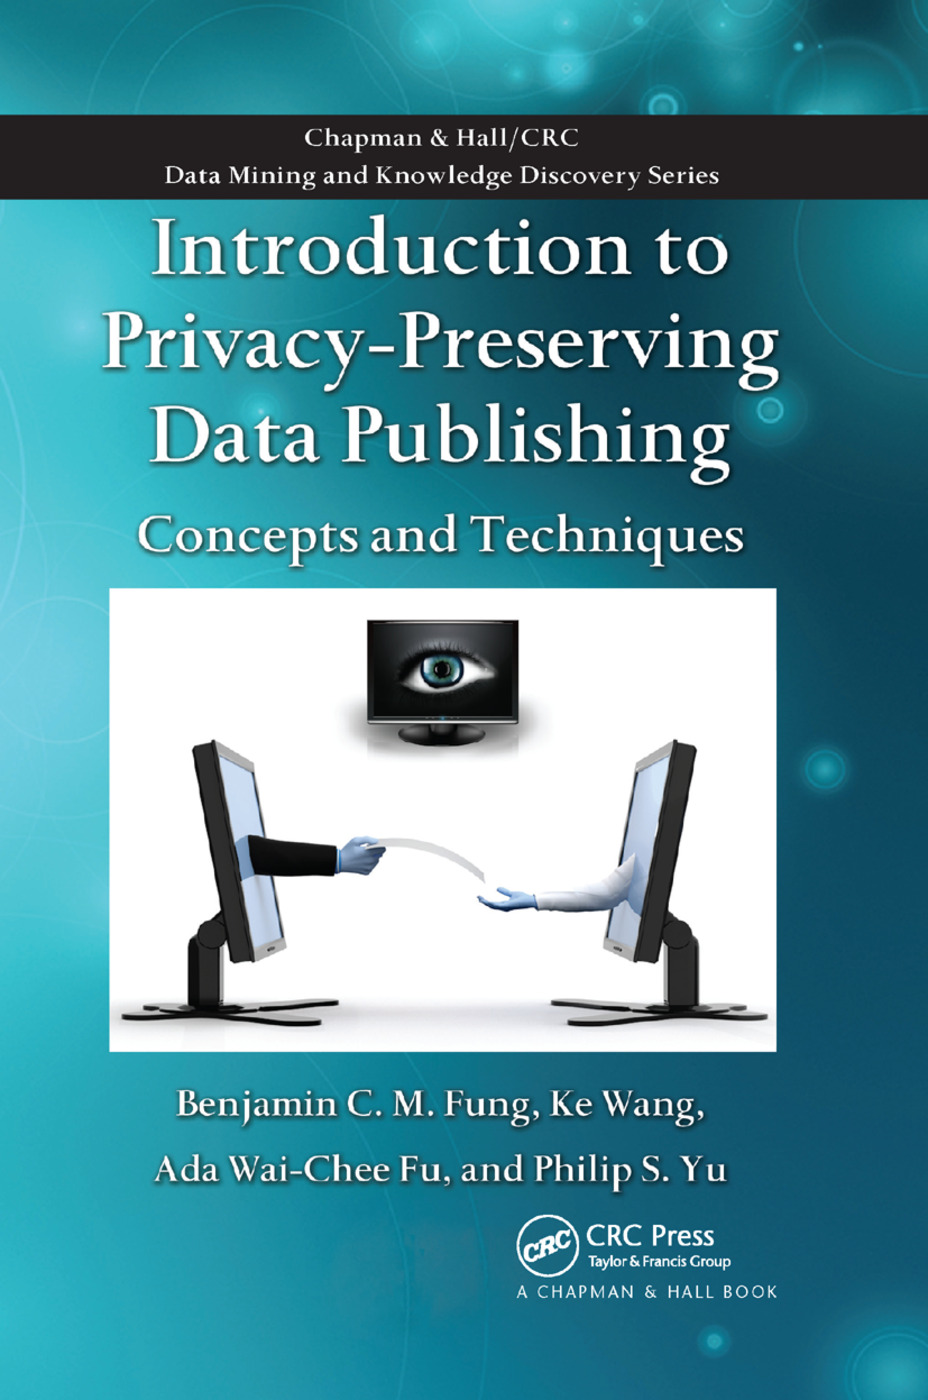 Introduction to Privacy-Preserving Data Publishing